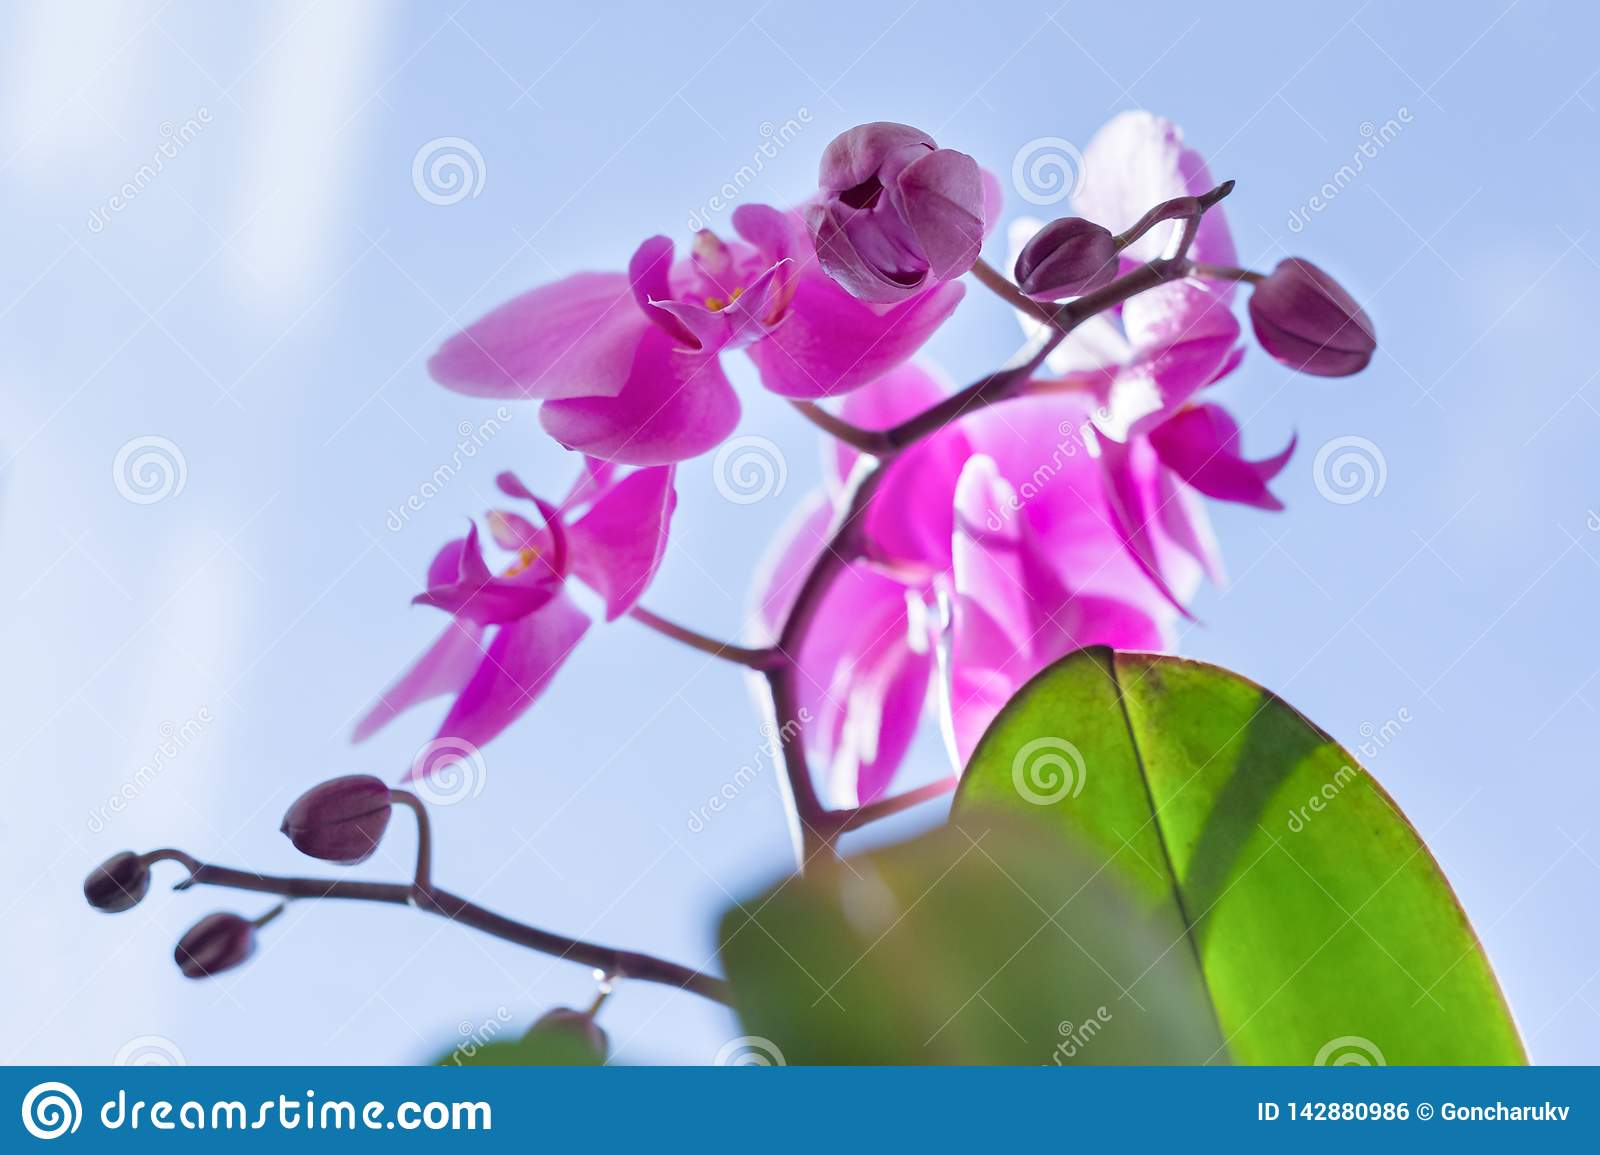 Closeup of pink purple orchid flowers, blue sunny sky background, spring at home, spring holidays